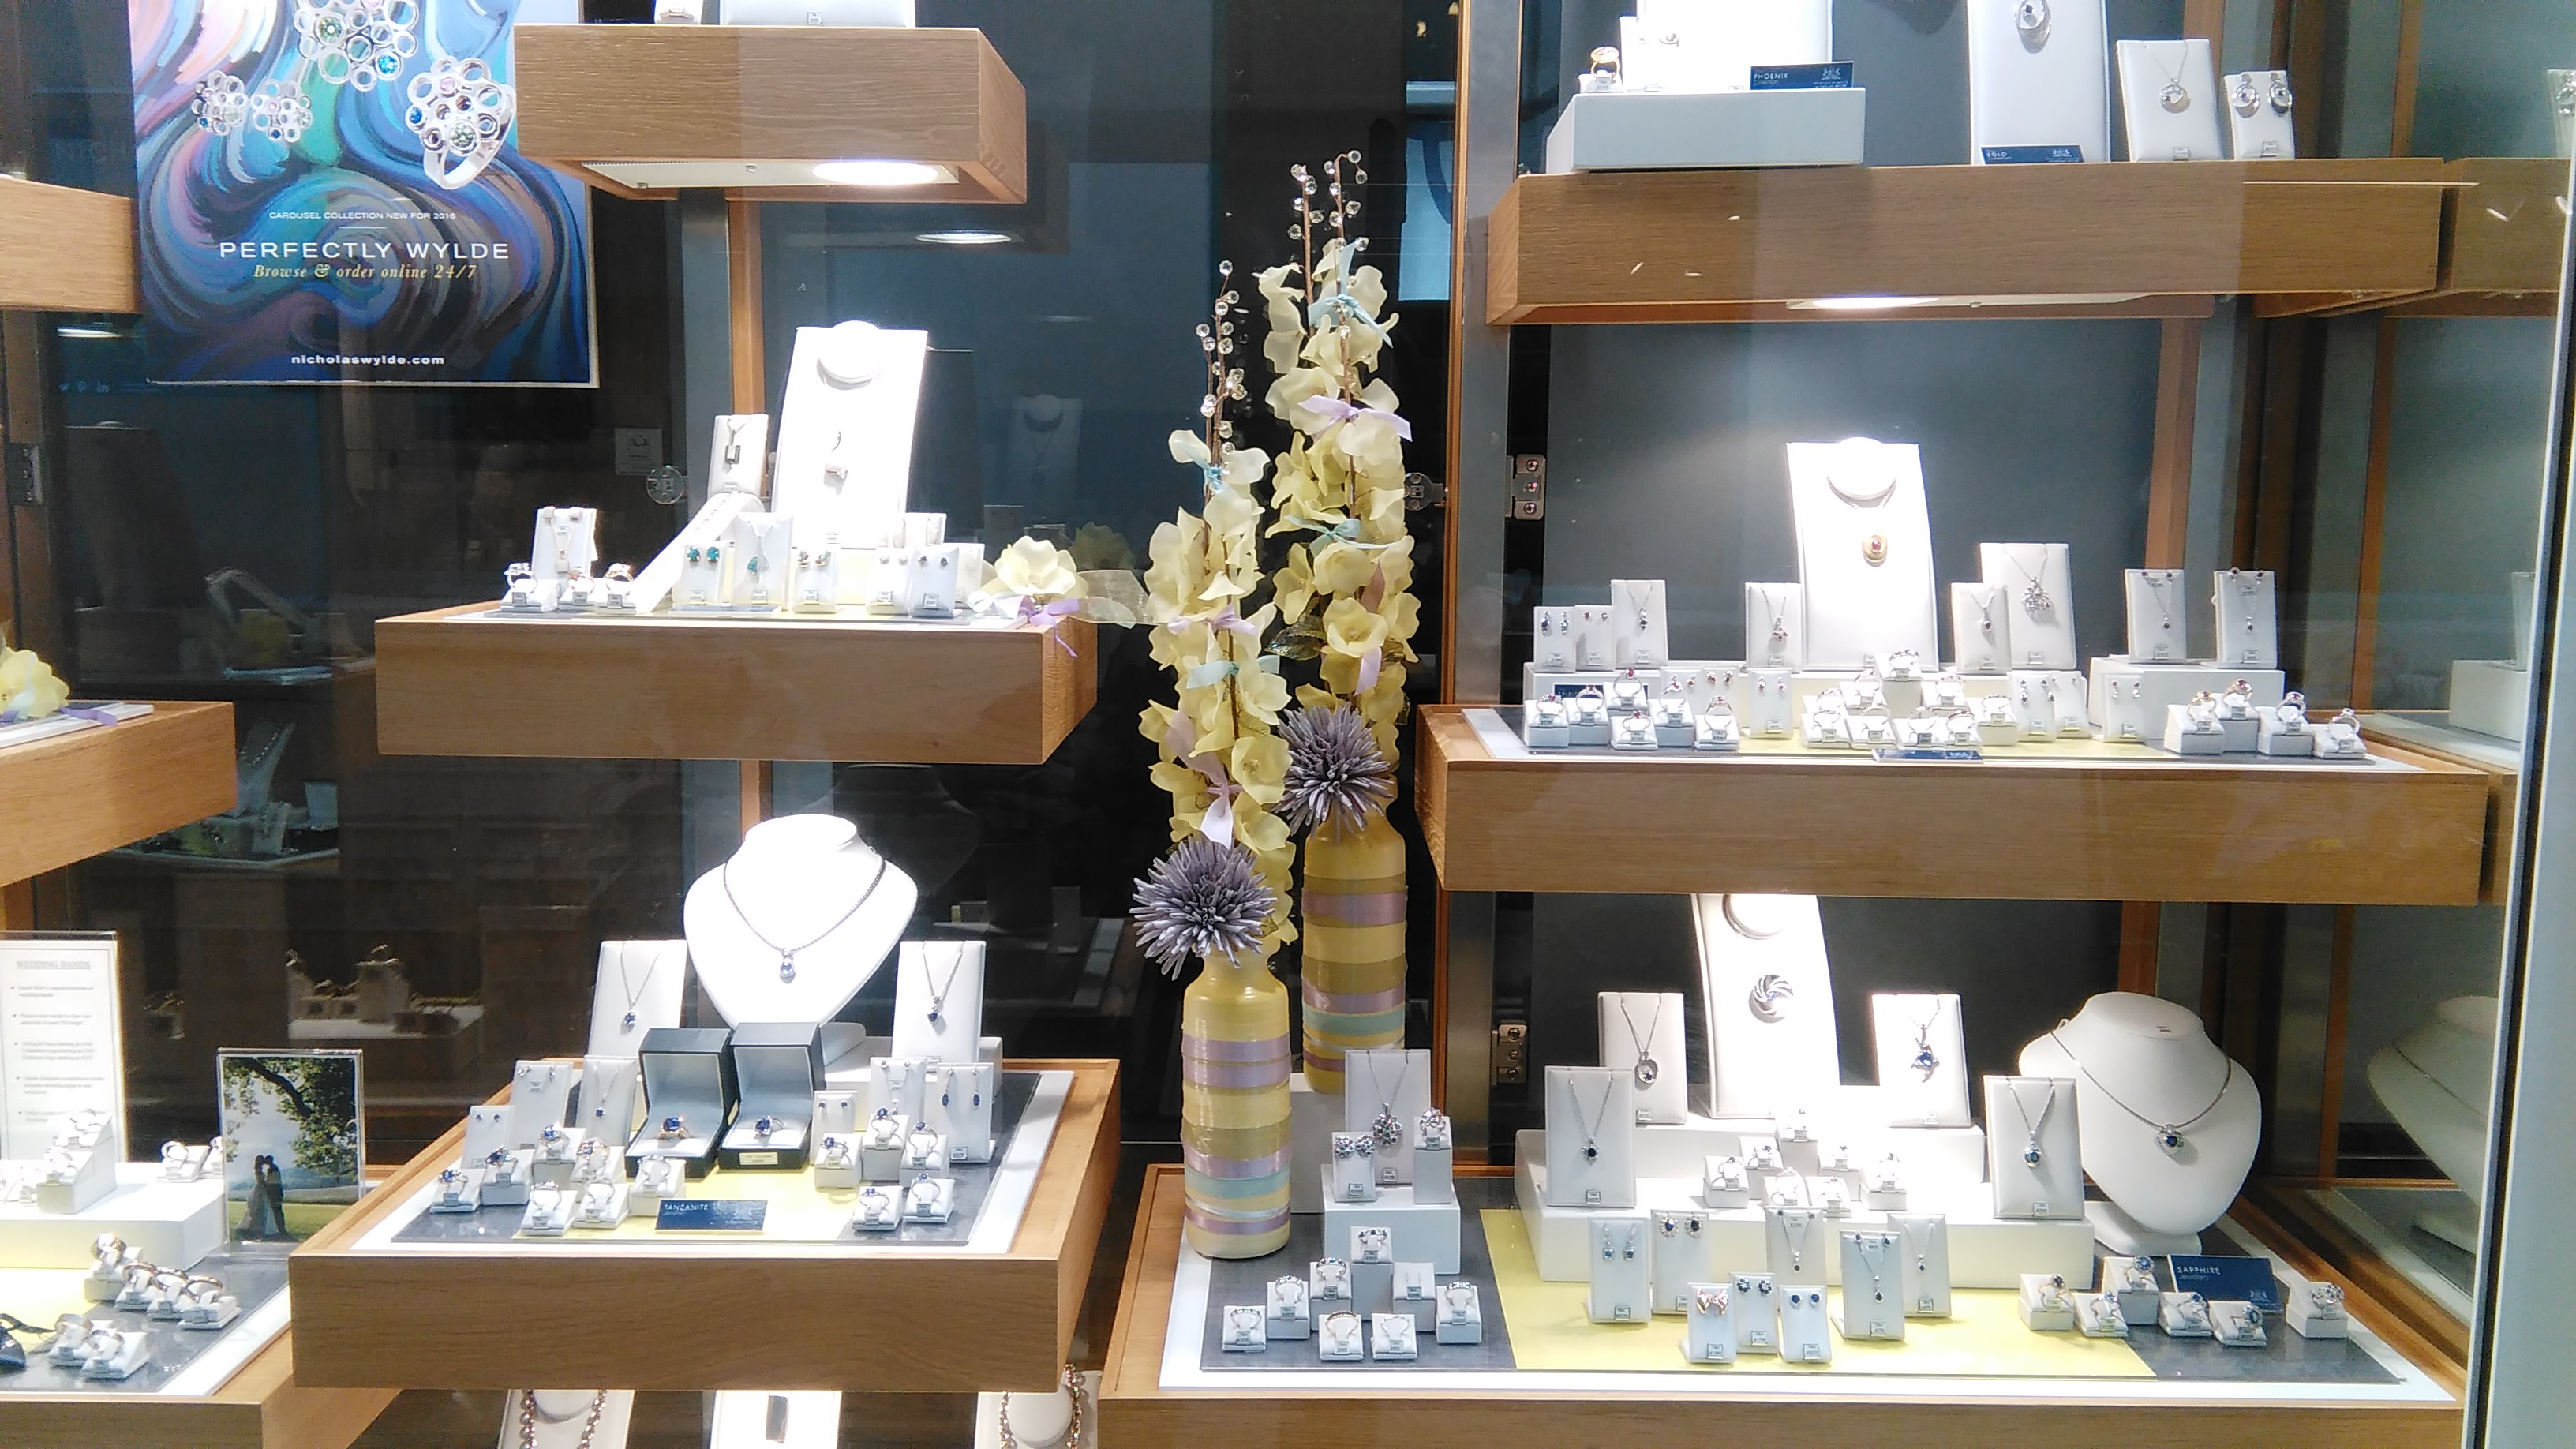 Spring has sprung in our new window display!